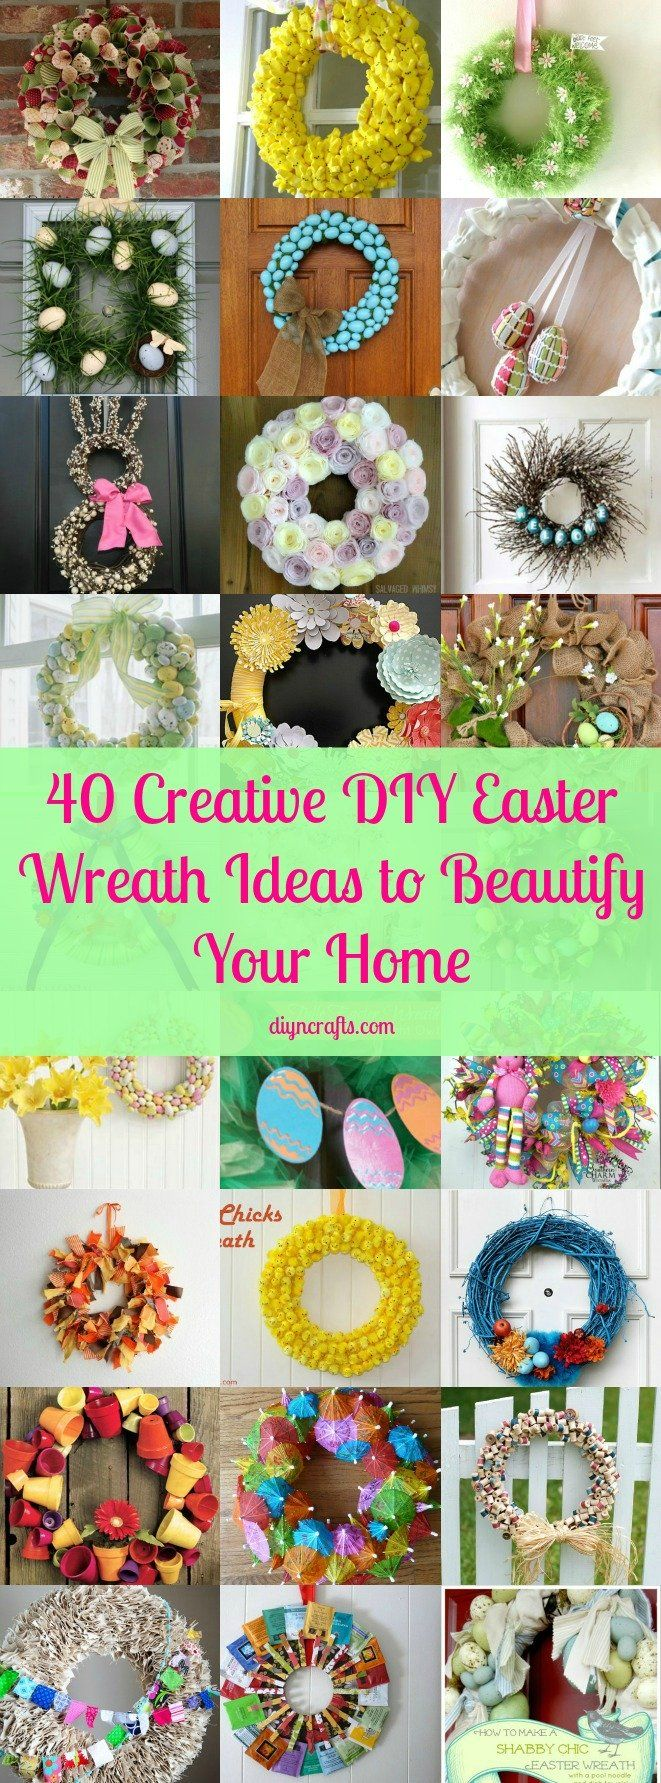 40 Creative DIY Easter Wreath Ideas to Beautify Your Home – DIY  Crafts